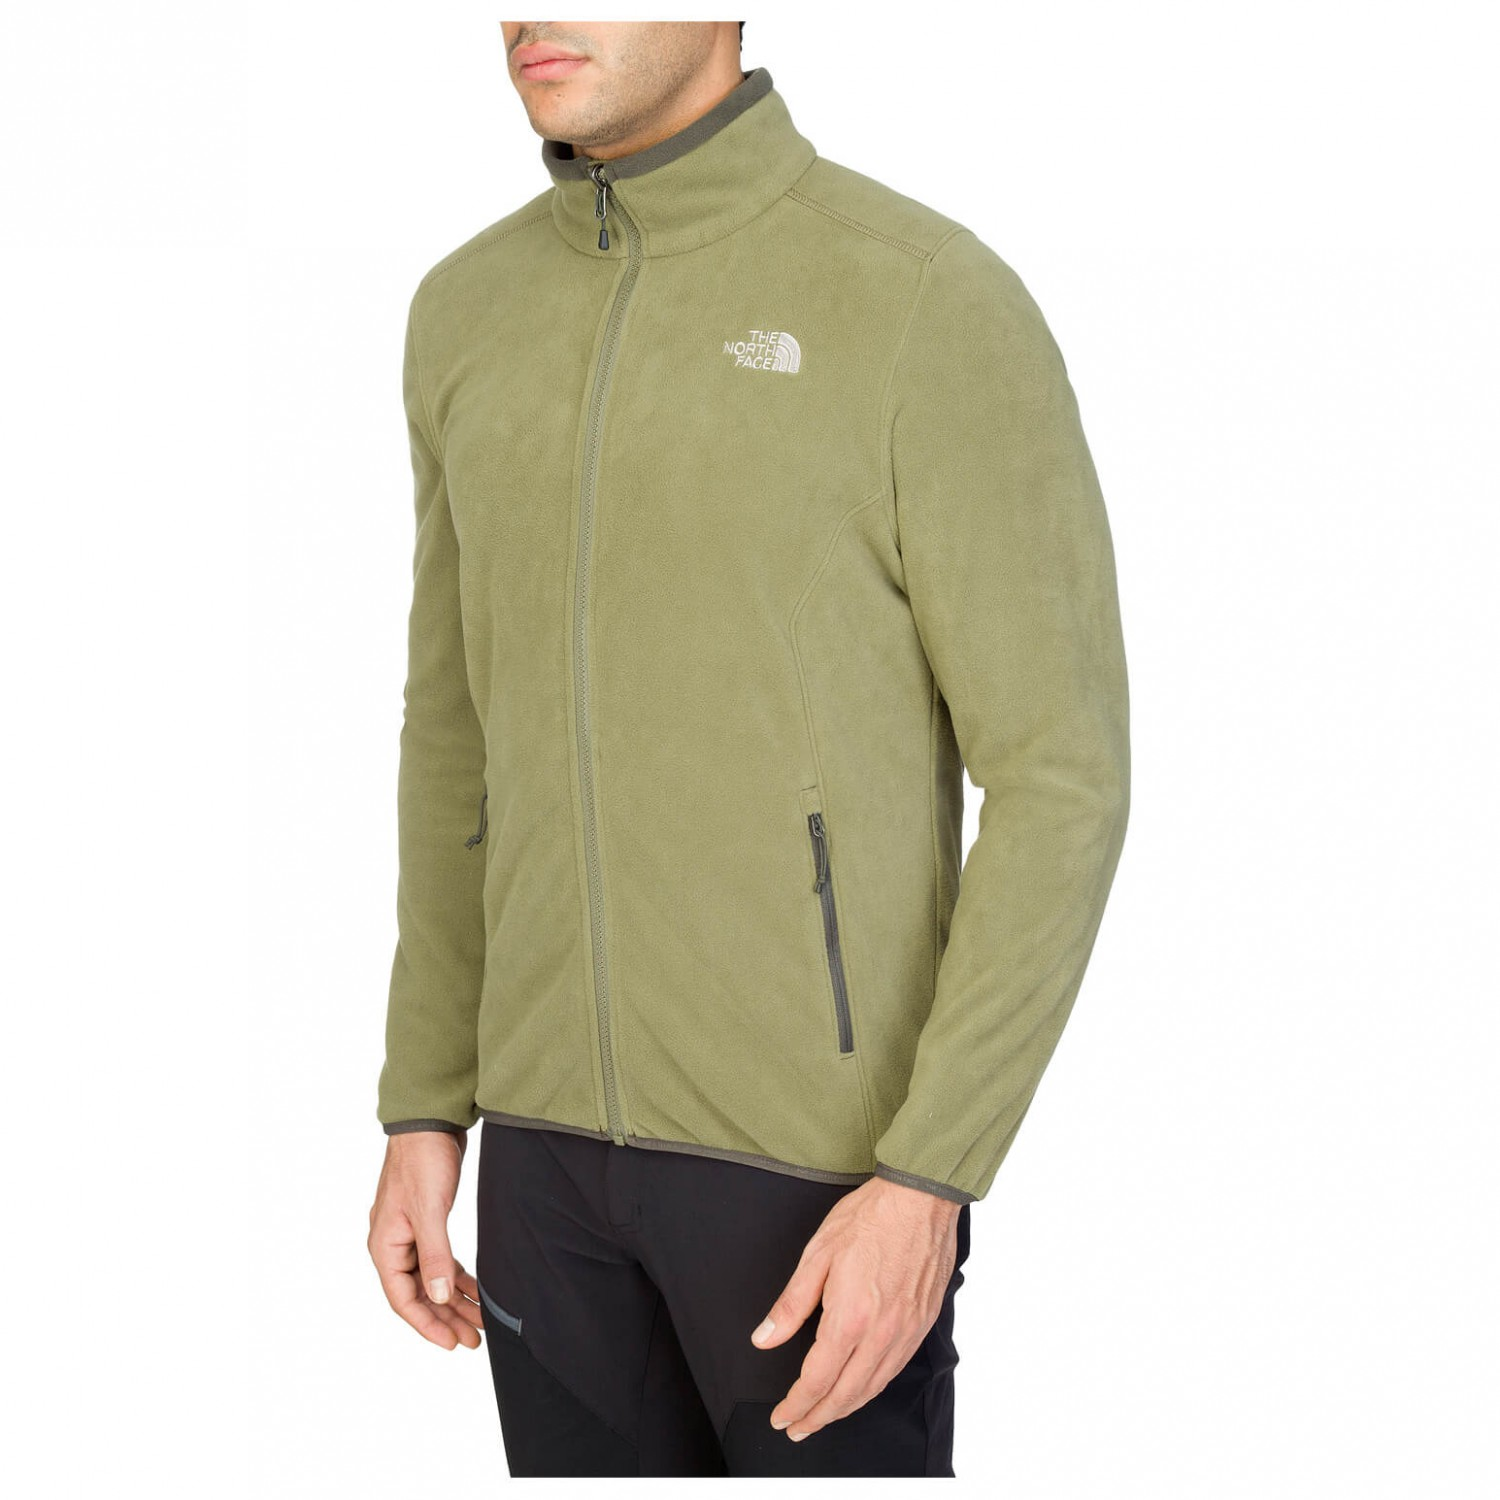 separation shoes c55d7 fcfda The North Face - Evolution II Triclimate - Doppeljacke - New Taupe Green /  TNF Black | XS